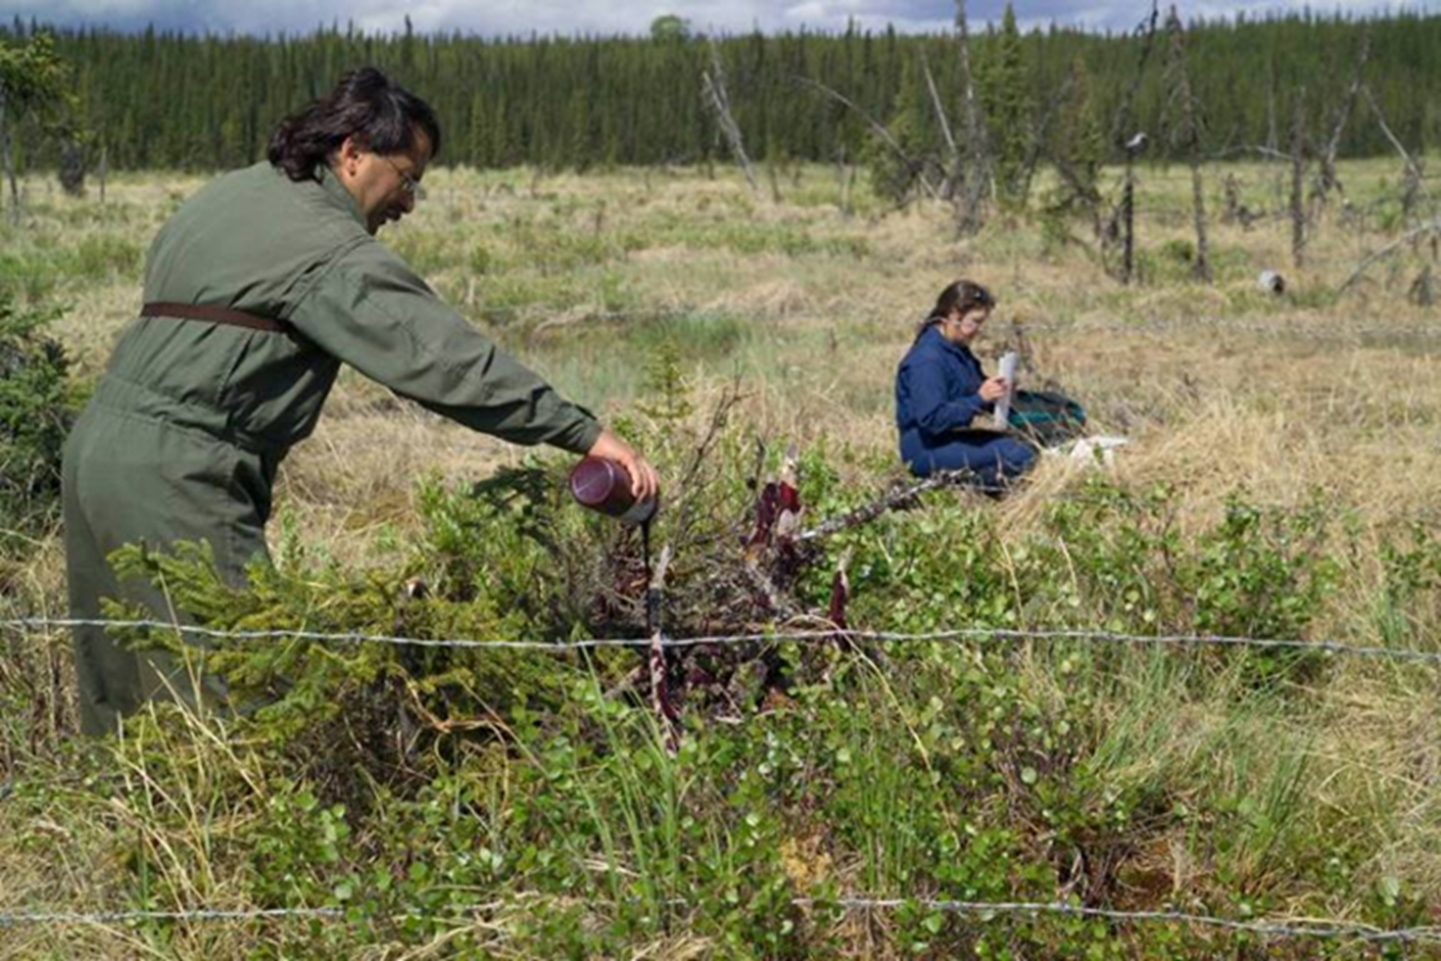 The island life of Kenai brown bears means they rely entirely on their own procreation to survive as a population, and that has become a challenge with so many people moving into the area.